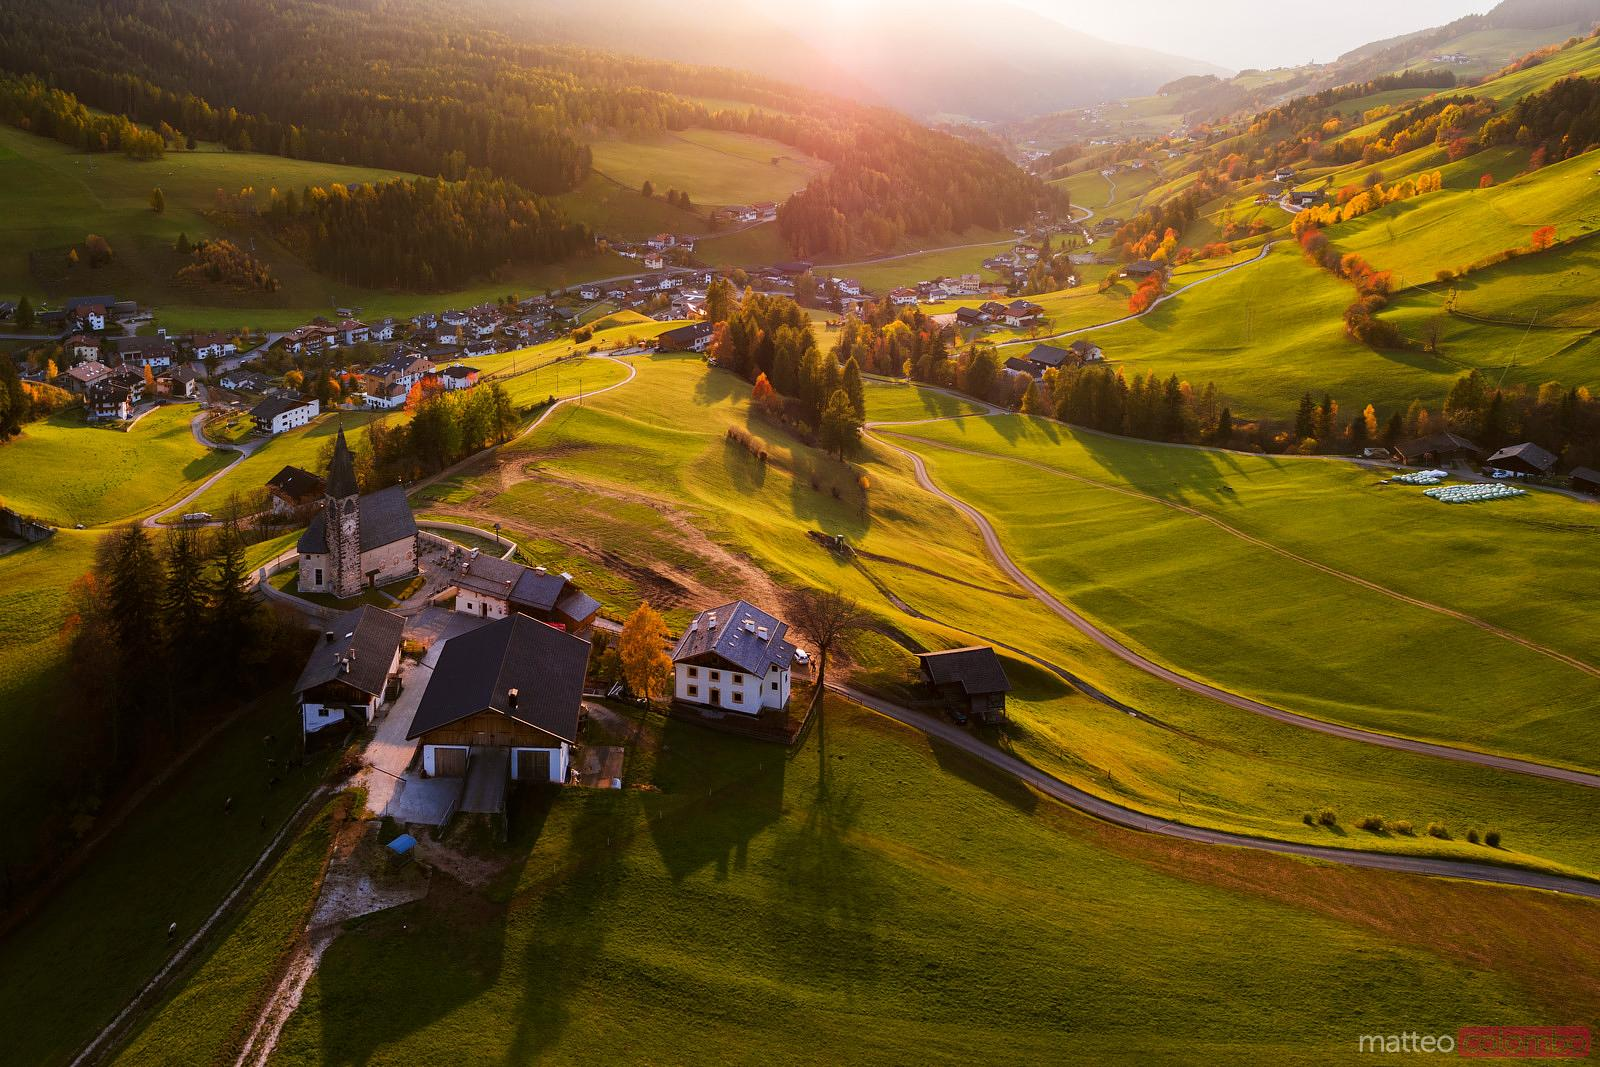 Aerial drone view of Santa Maddalena town at sunset